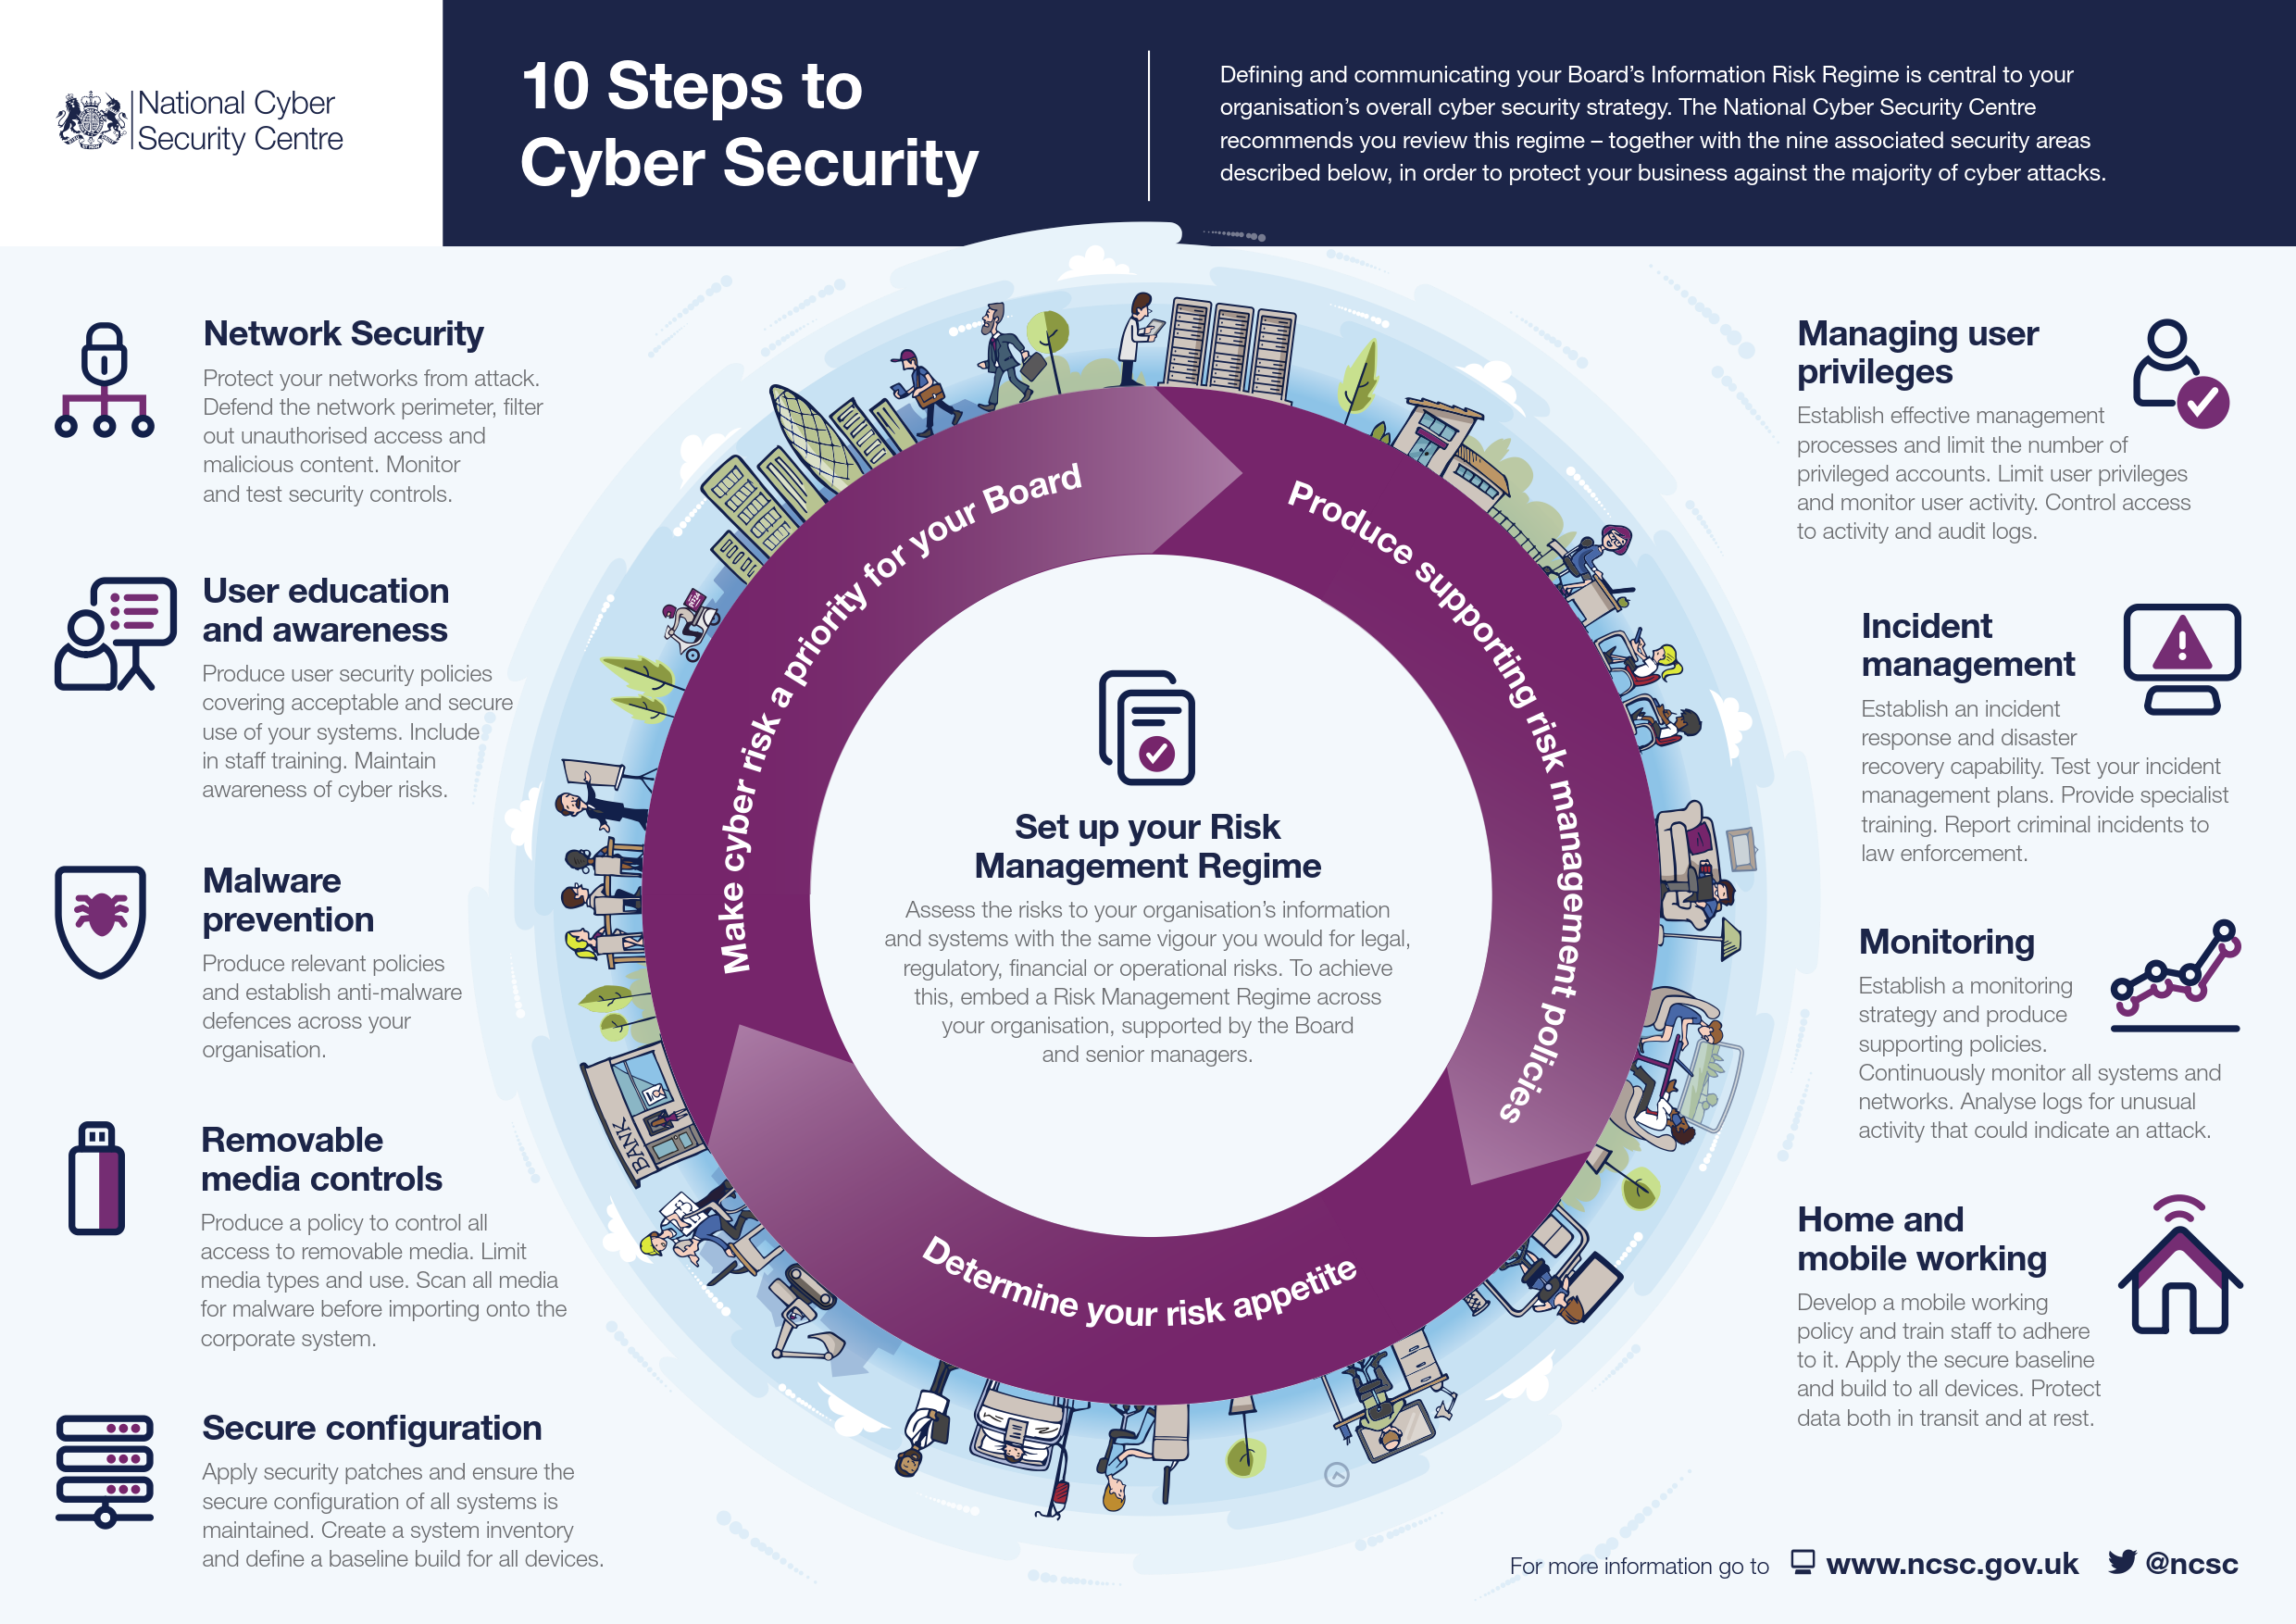 10 steps to cyber security - NCSC